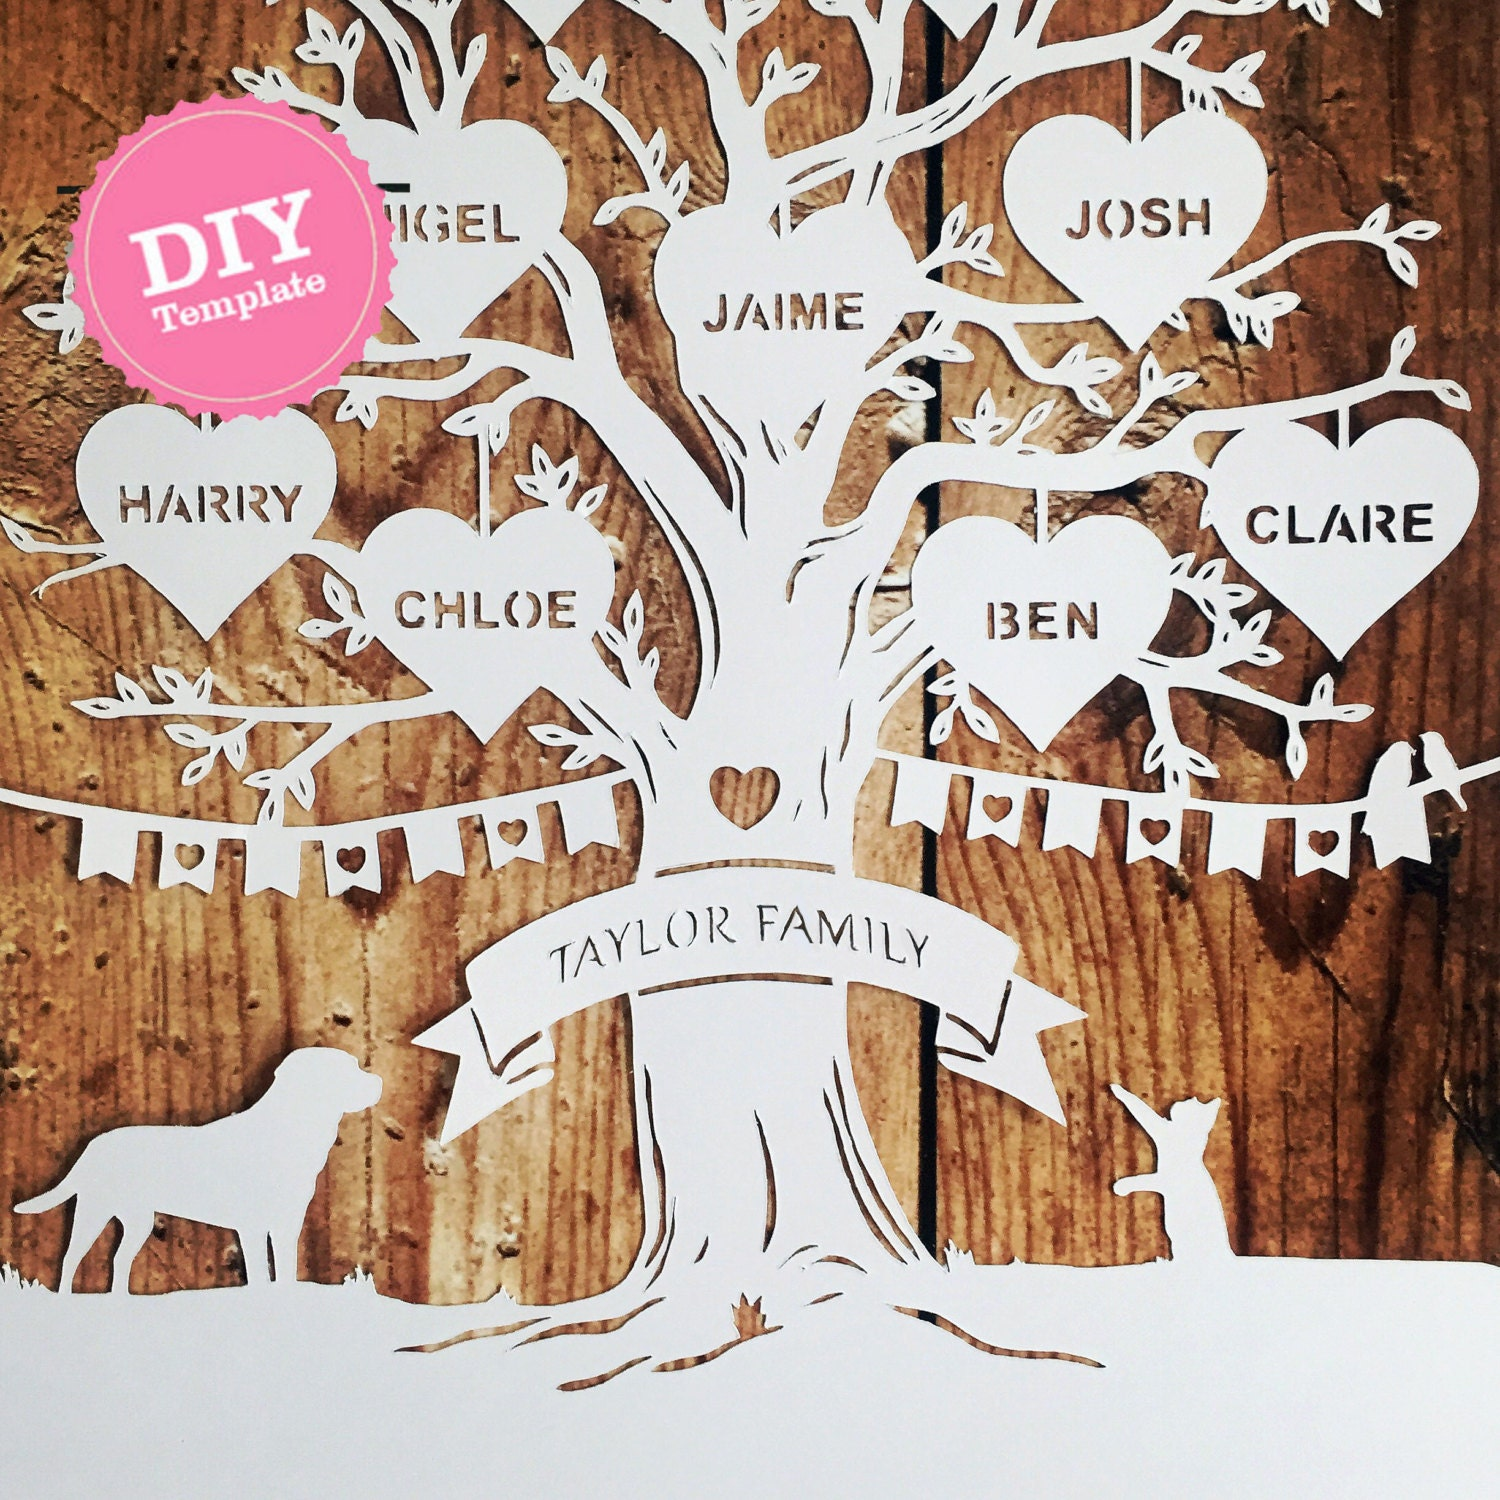 Diy Family Tree Papercutting Template Papercut Your Own Etsy